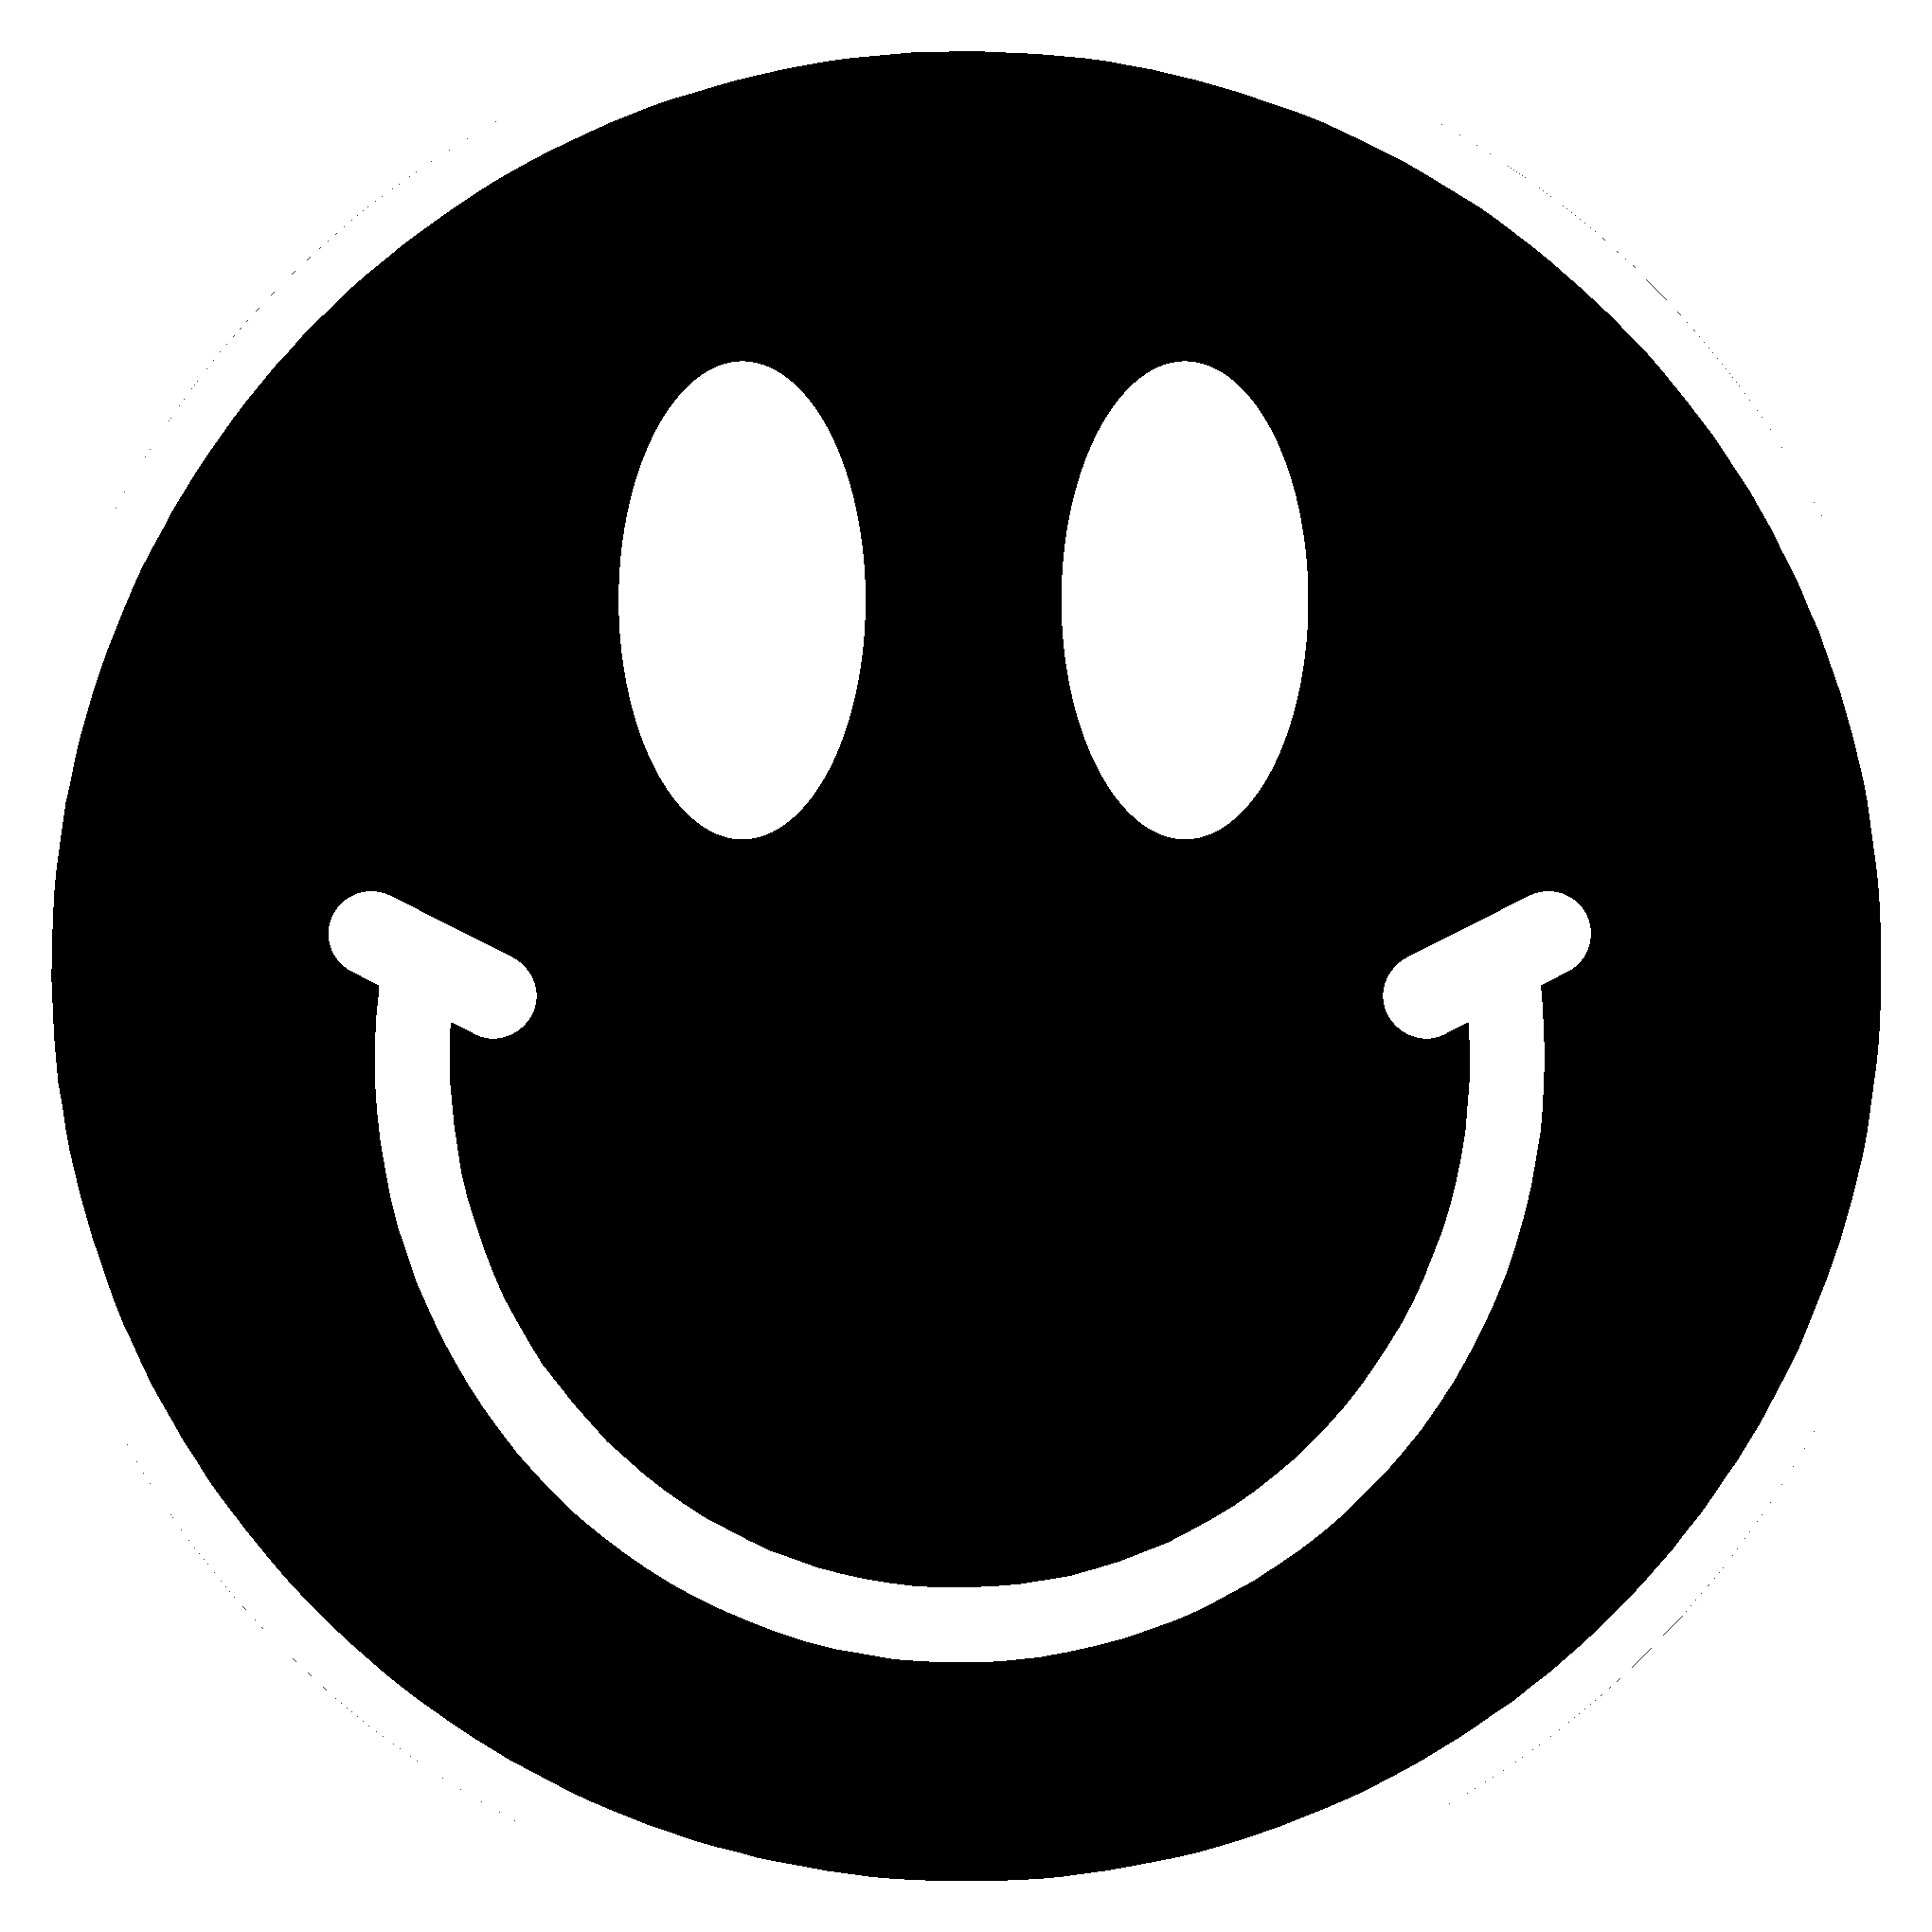 Emoji clipart black and white. Smiley face backgrounds wallpaper